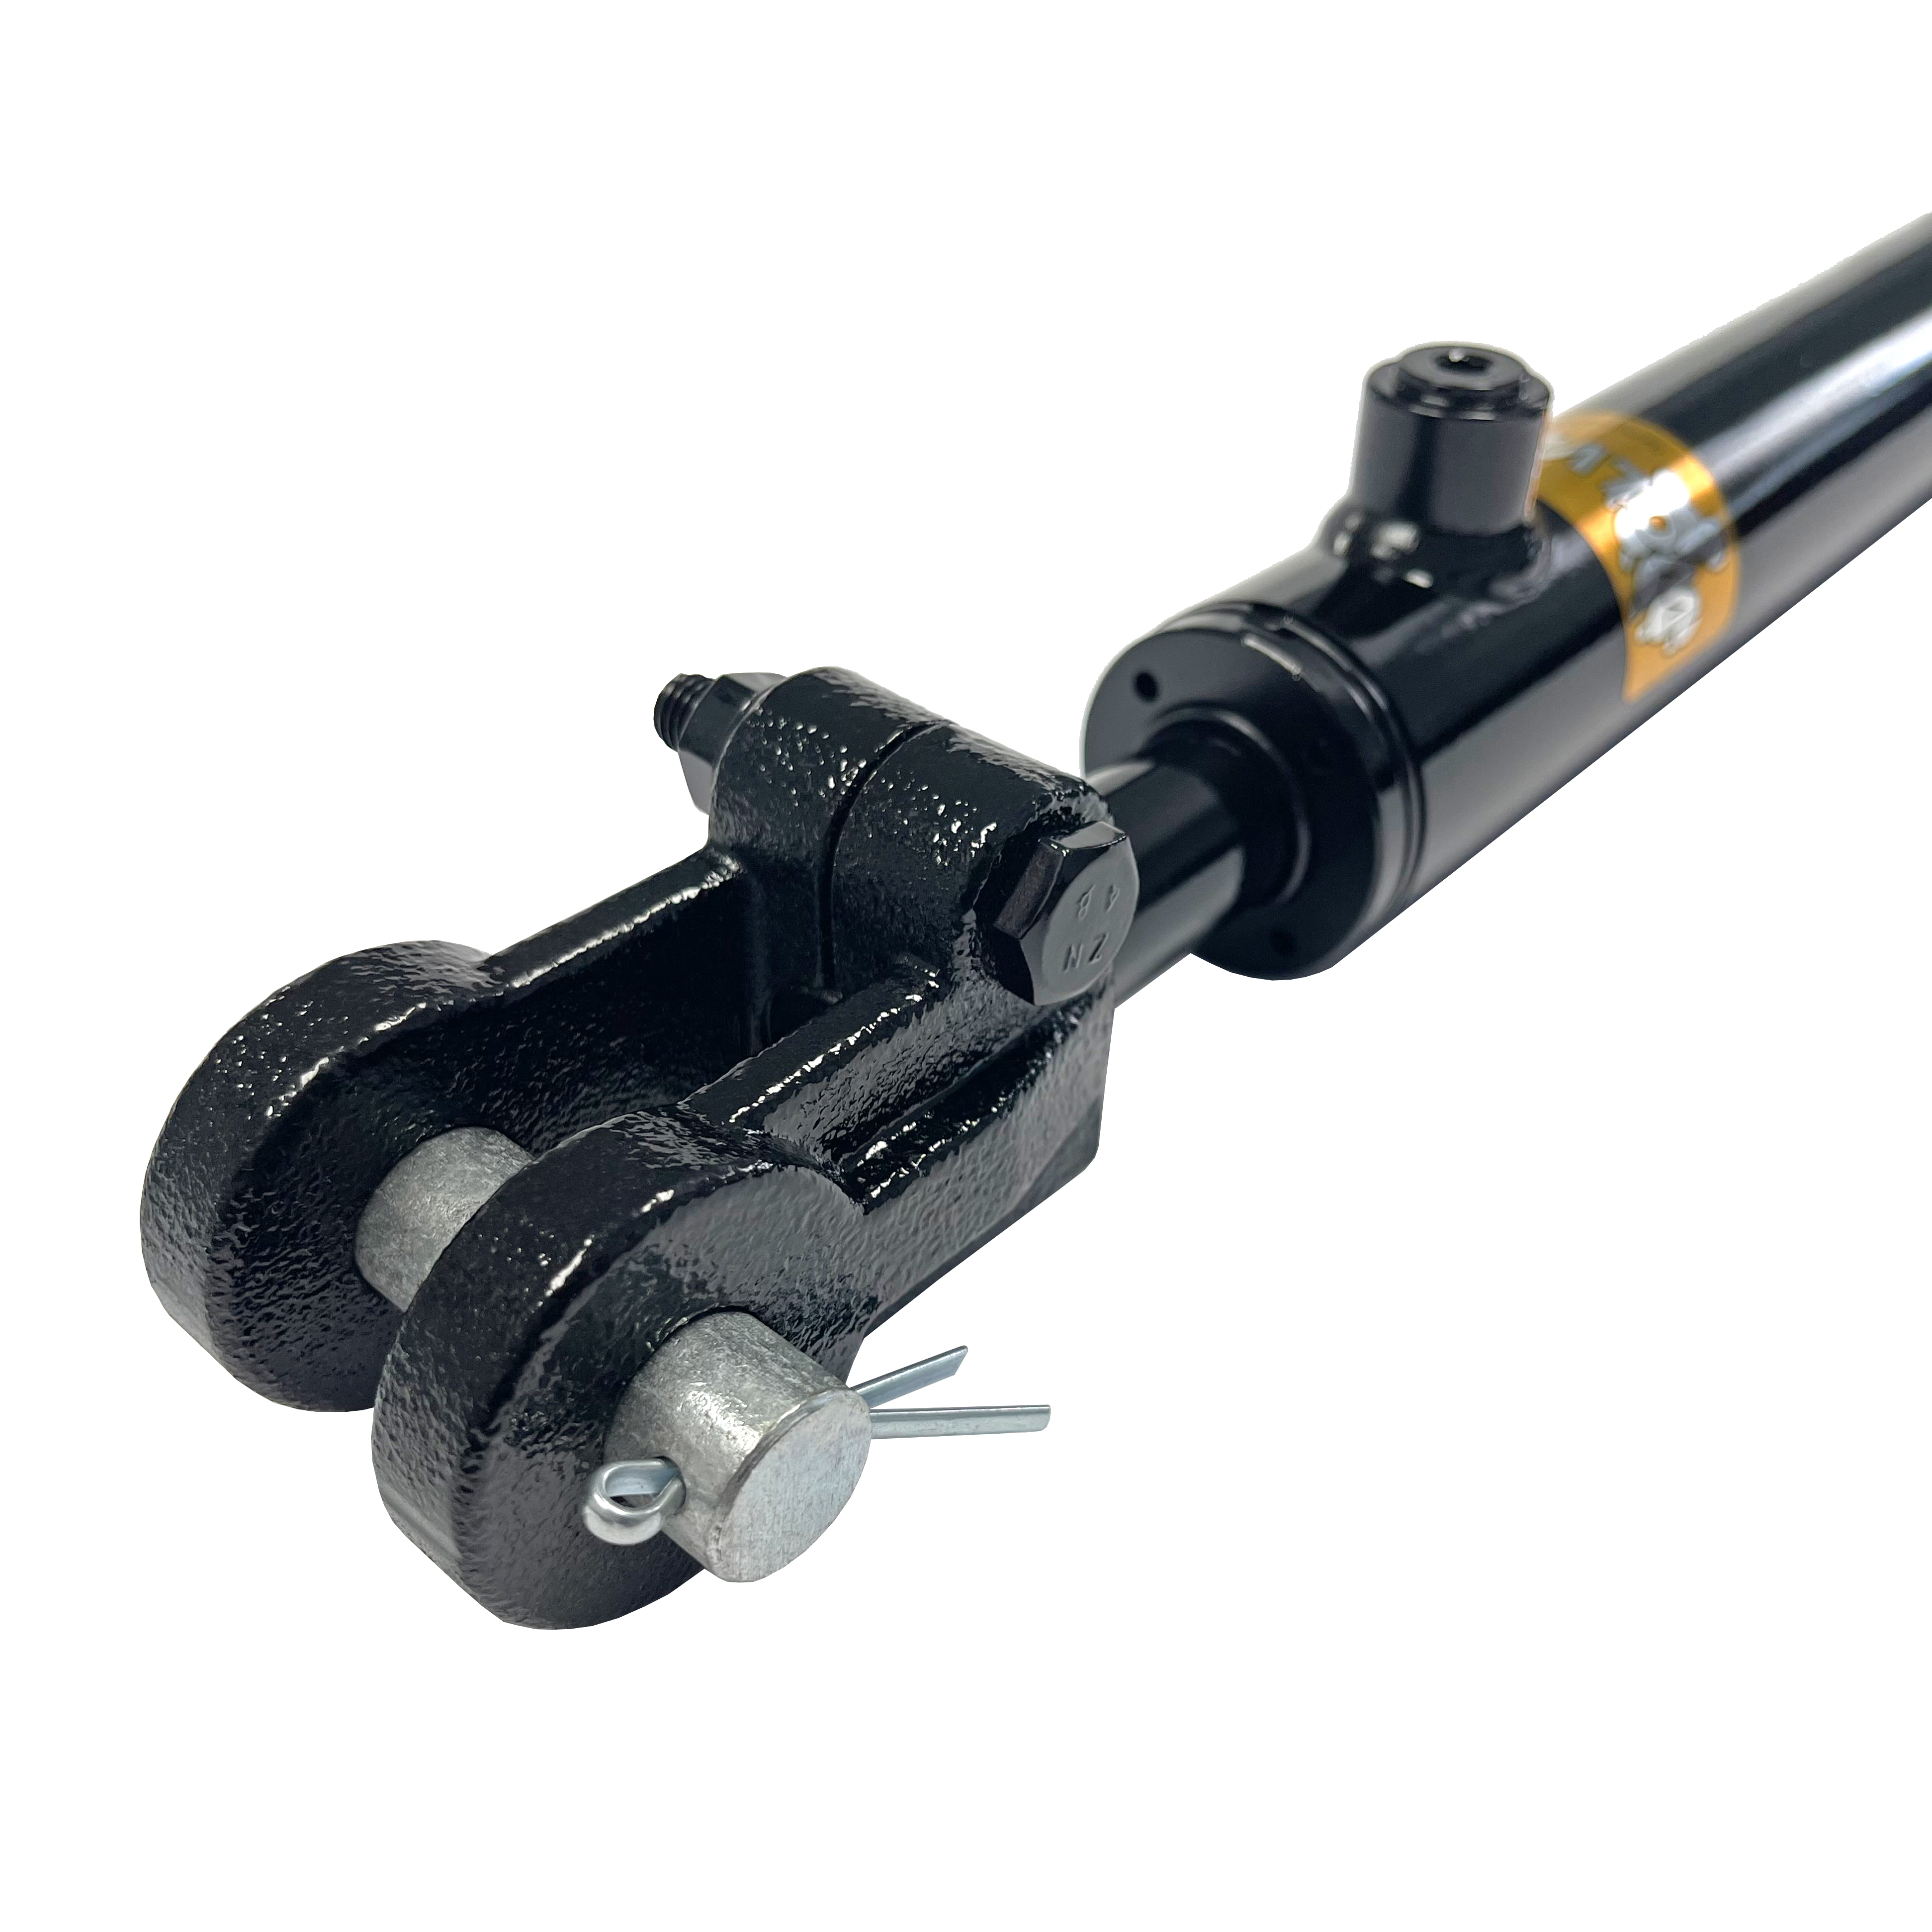 1.5 bore x 12 stroke Clevis hydraulic cylinder, welded Clevis double acting cylinder   Prince Hydraulics